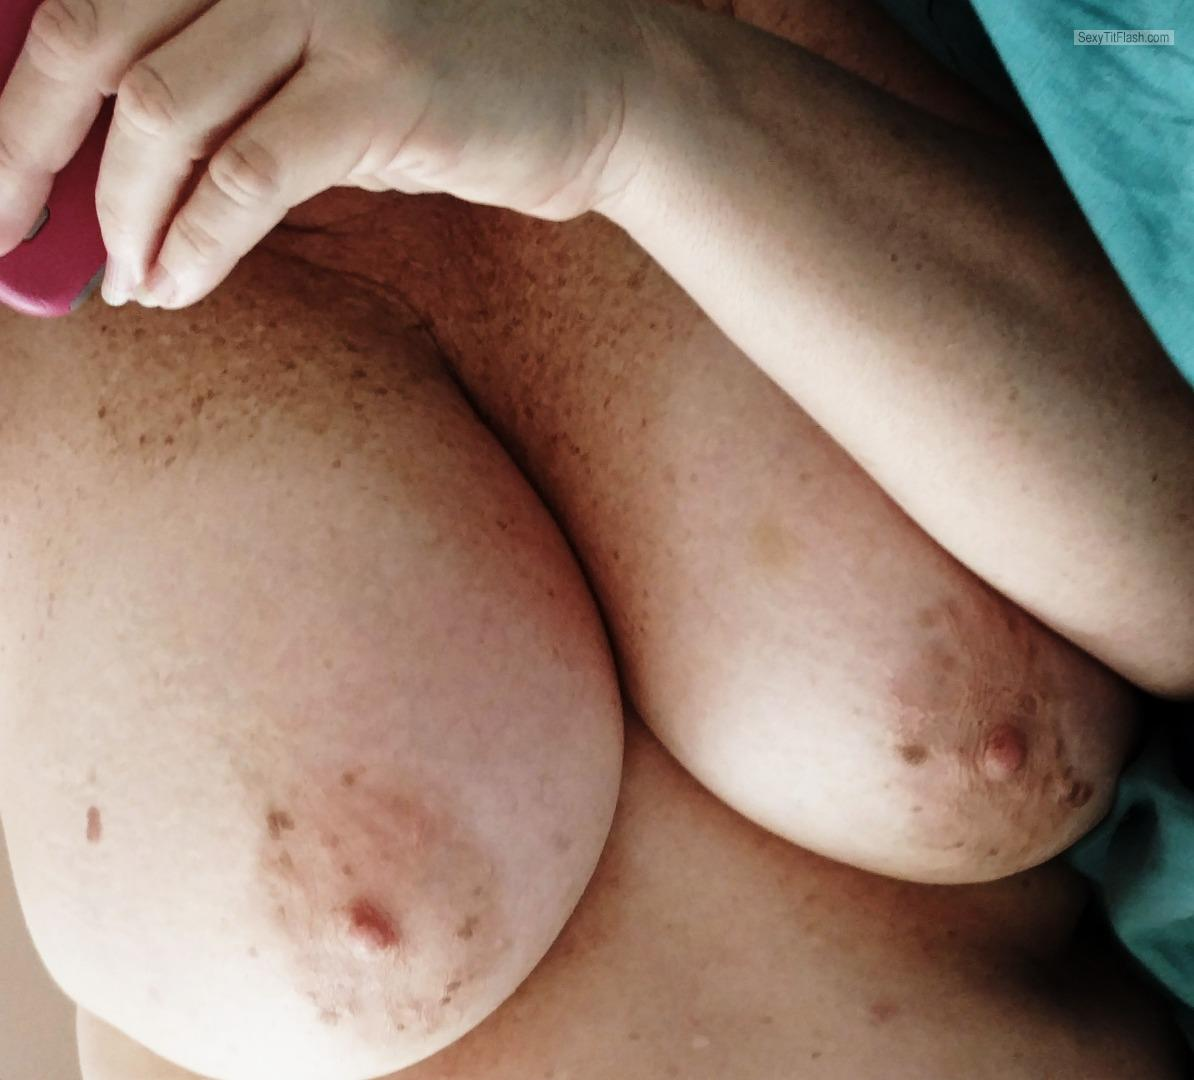 Tit Flash: My Very Big Tits (Selfie) - Baby-G from United States